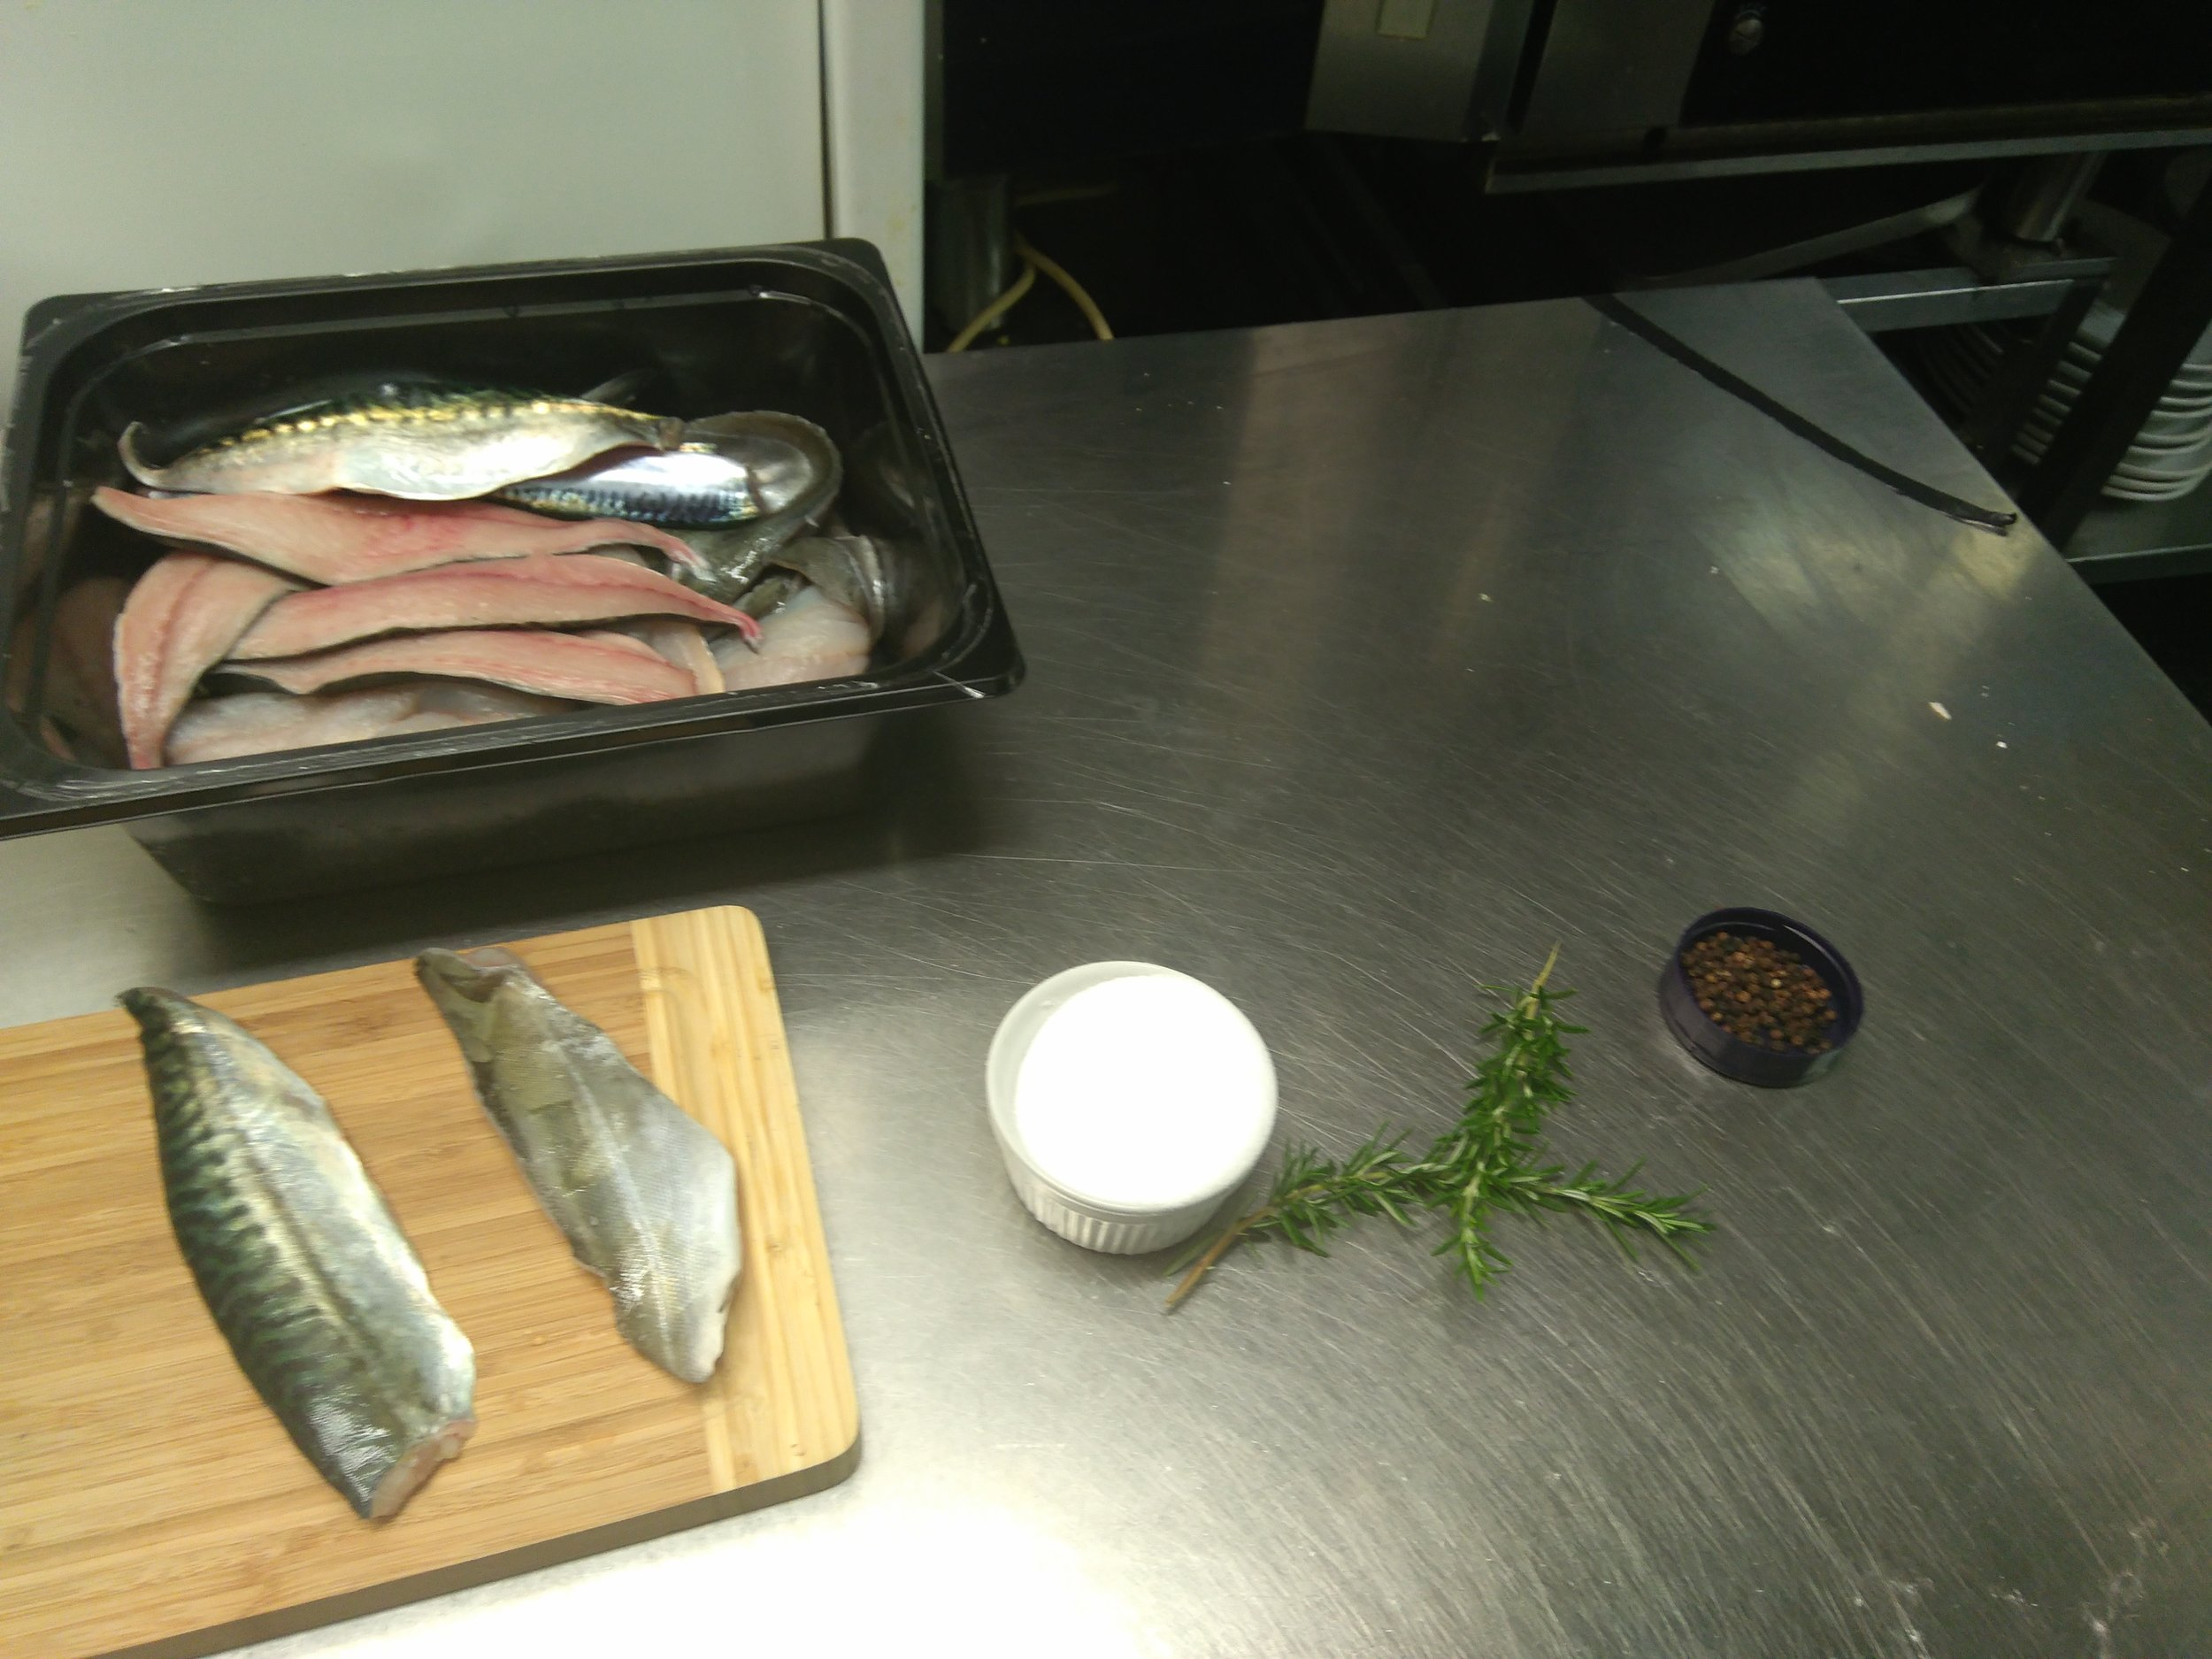 Getting ready to brine and cured the fish.